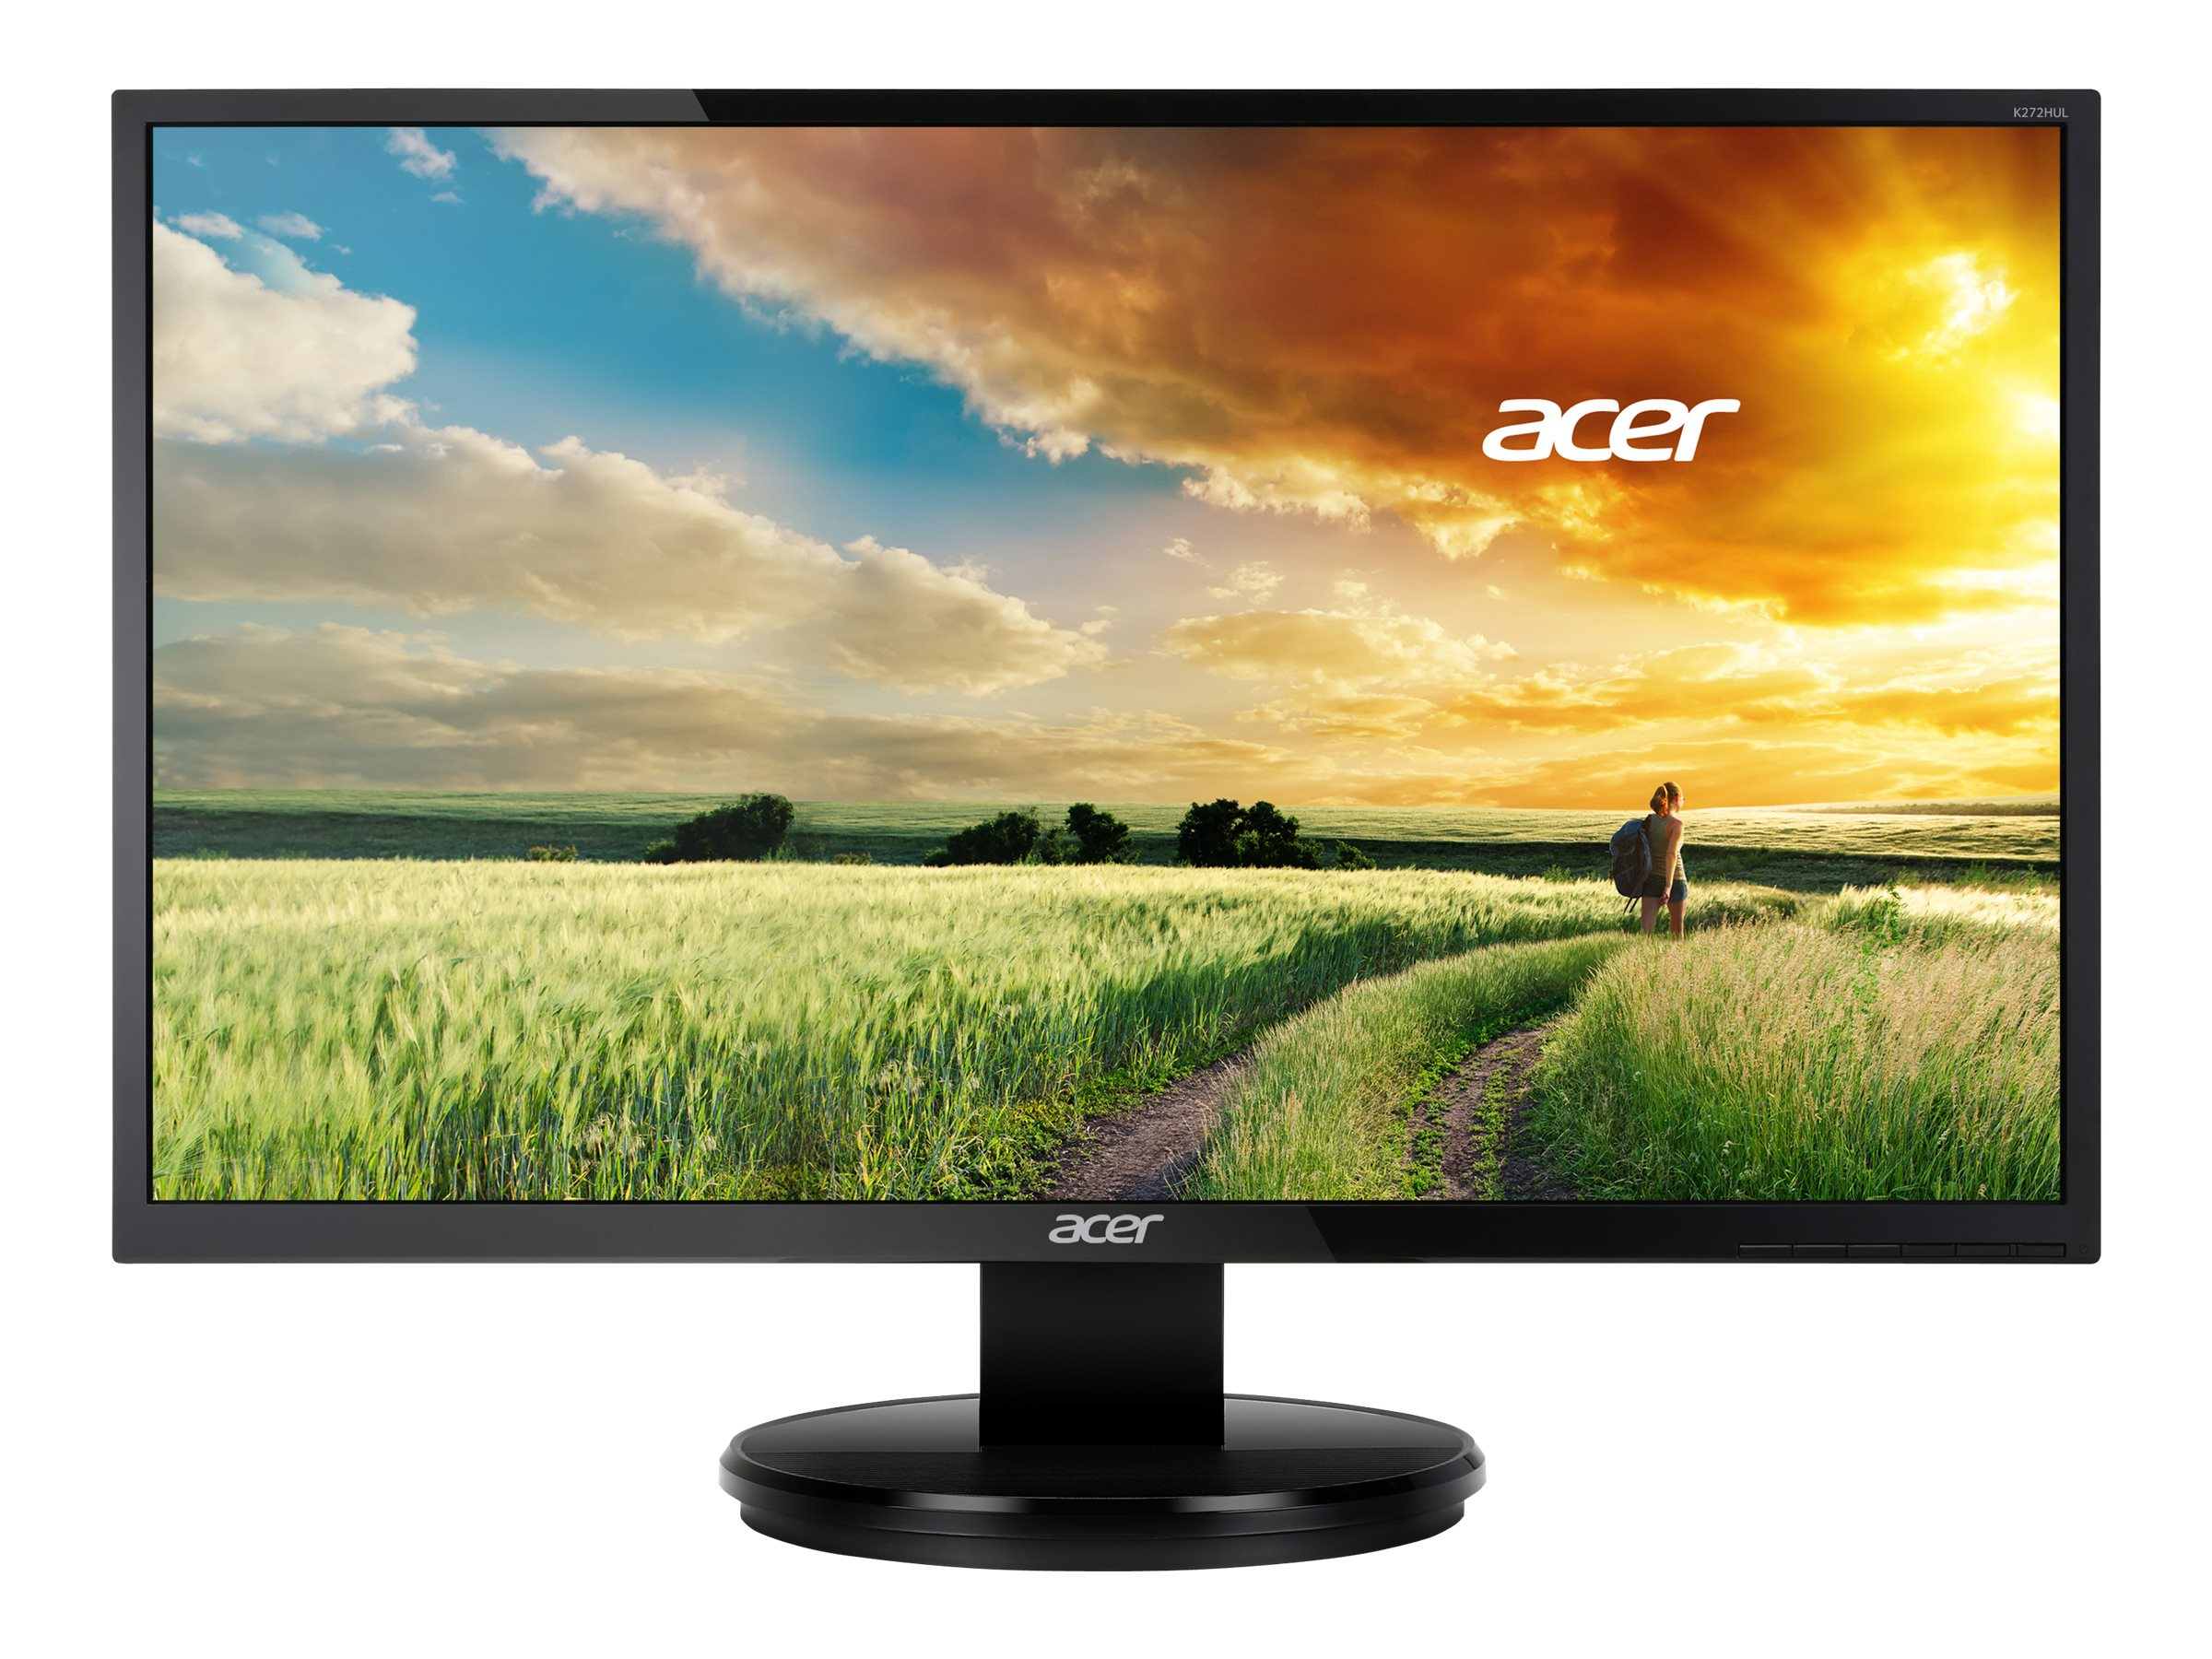 Acer 27 K272HUL bmiidp Quad HD LED-LCD Monitor, Black, UM.HX2AA.001, 18105804, Monitors - LED-LCD